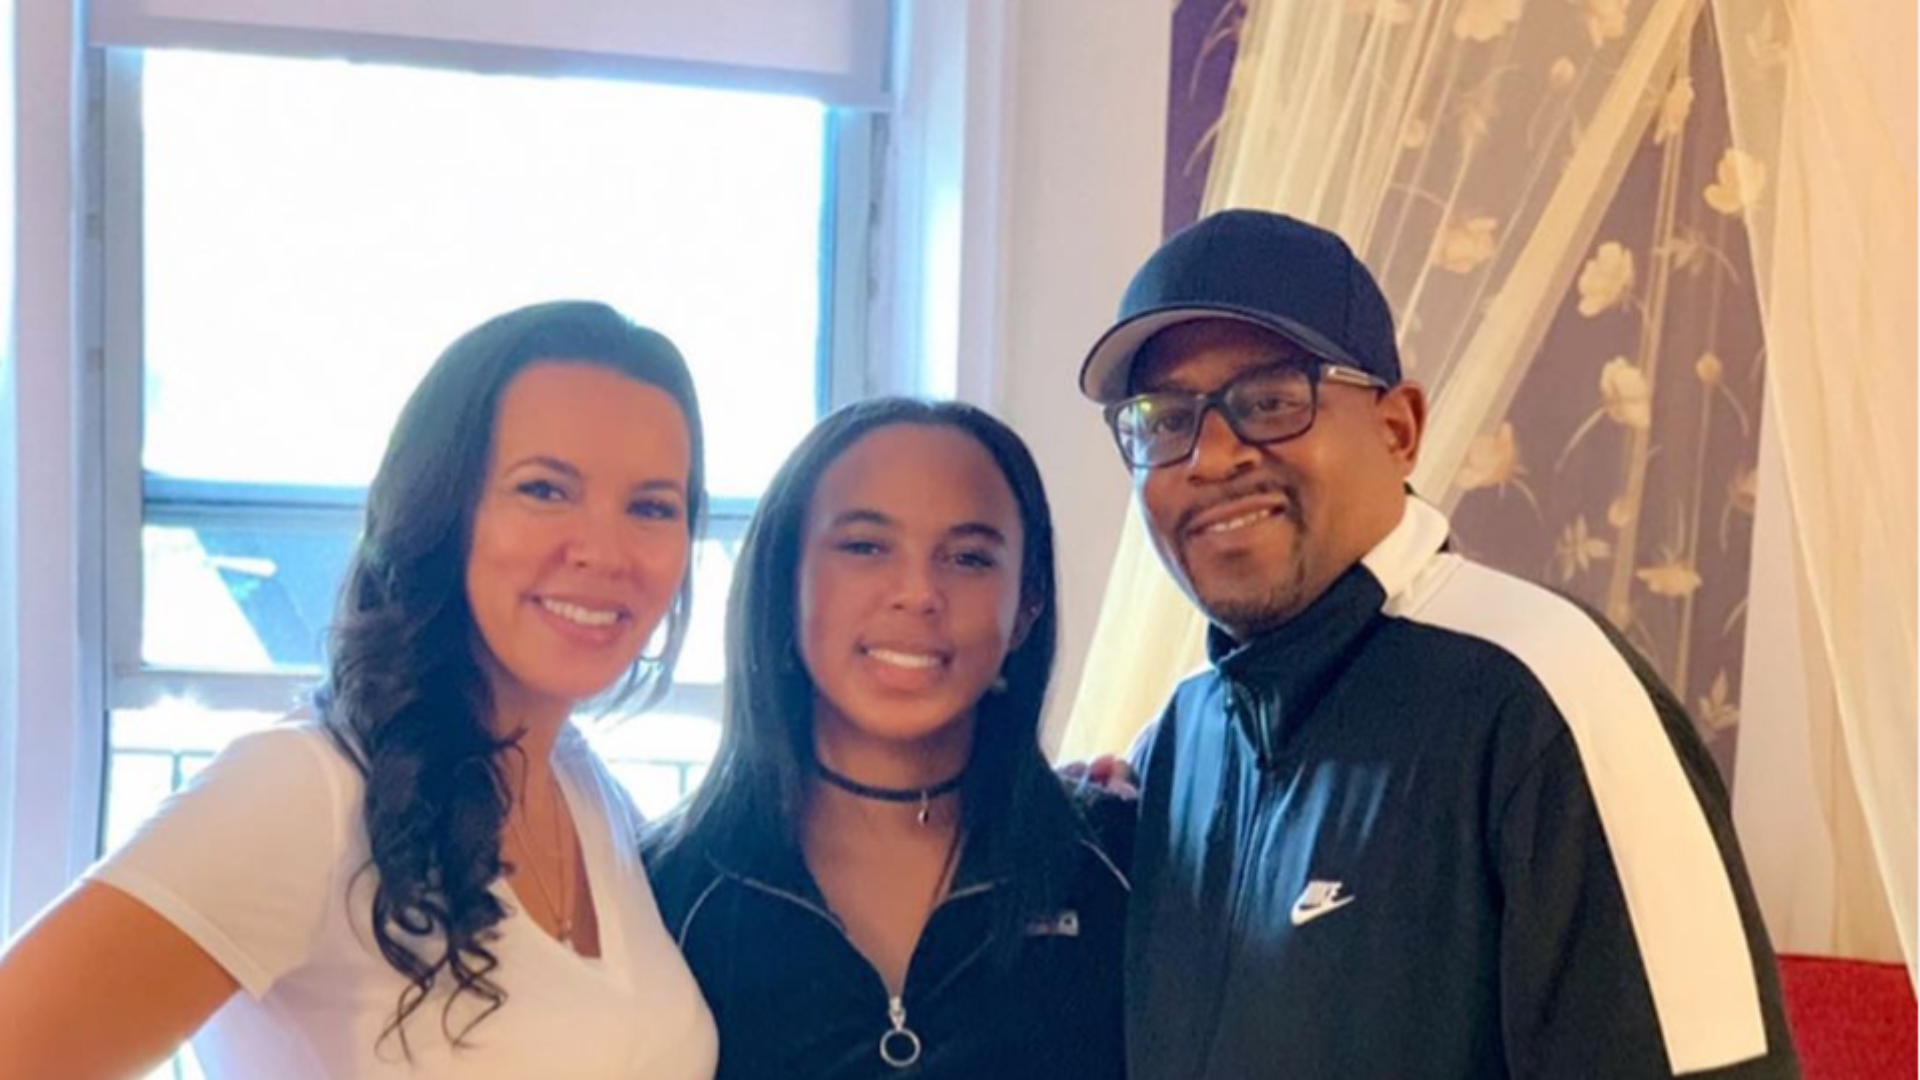 Martin Lawrence and Ex-Wife Shamicka Send Their Daughter Iyanna Off To College